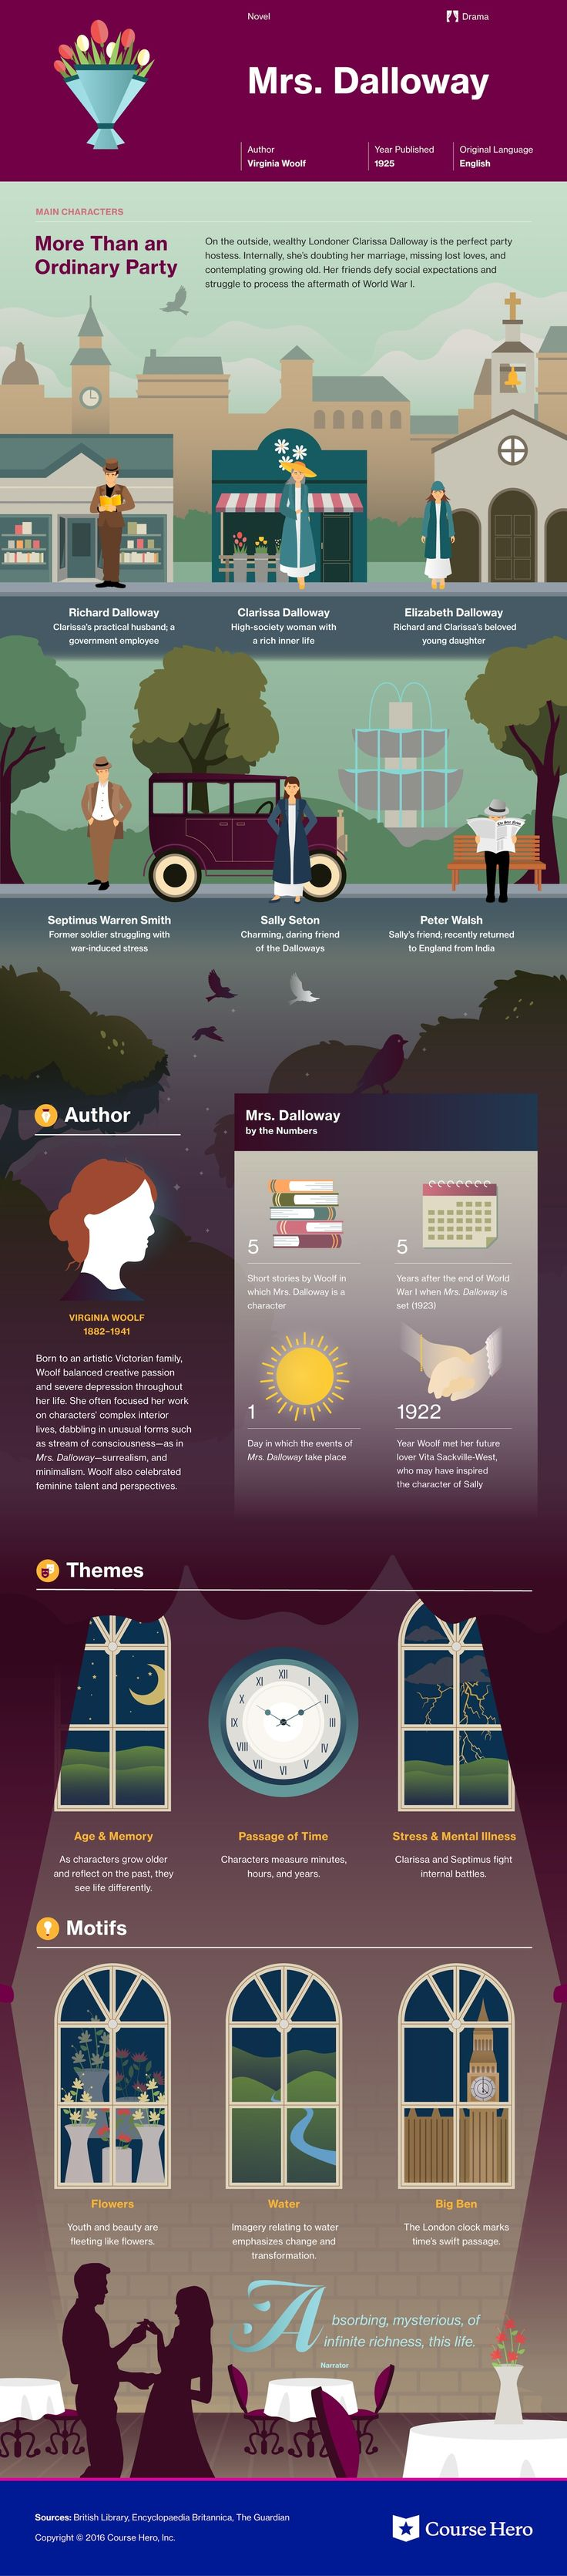 Mrs. Dalloway infographic